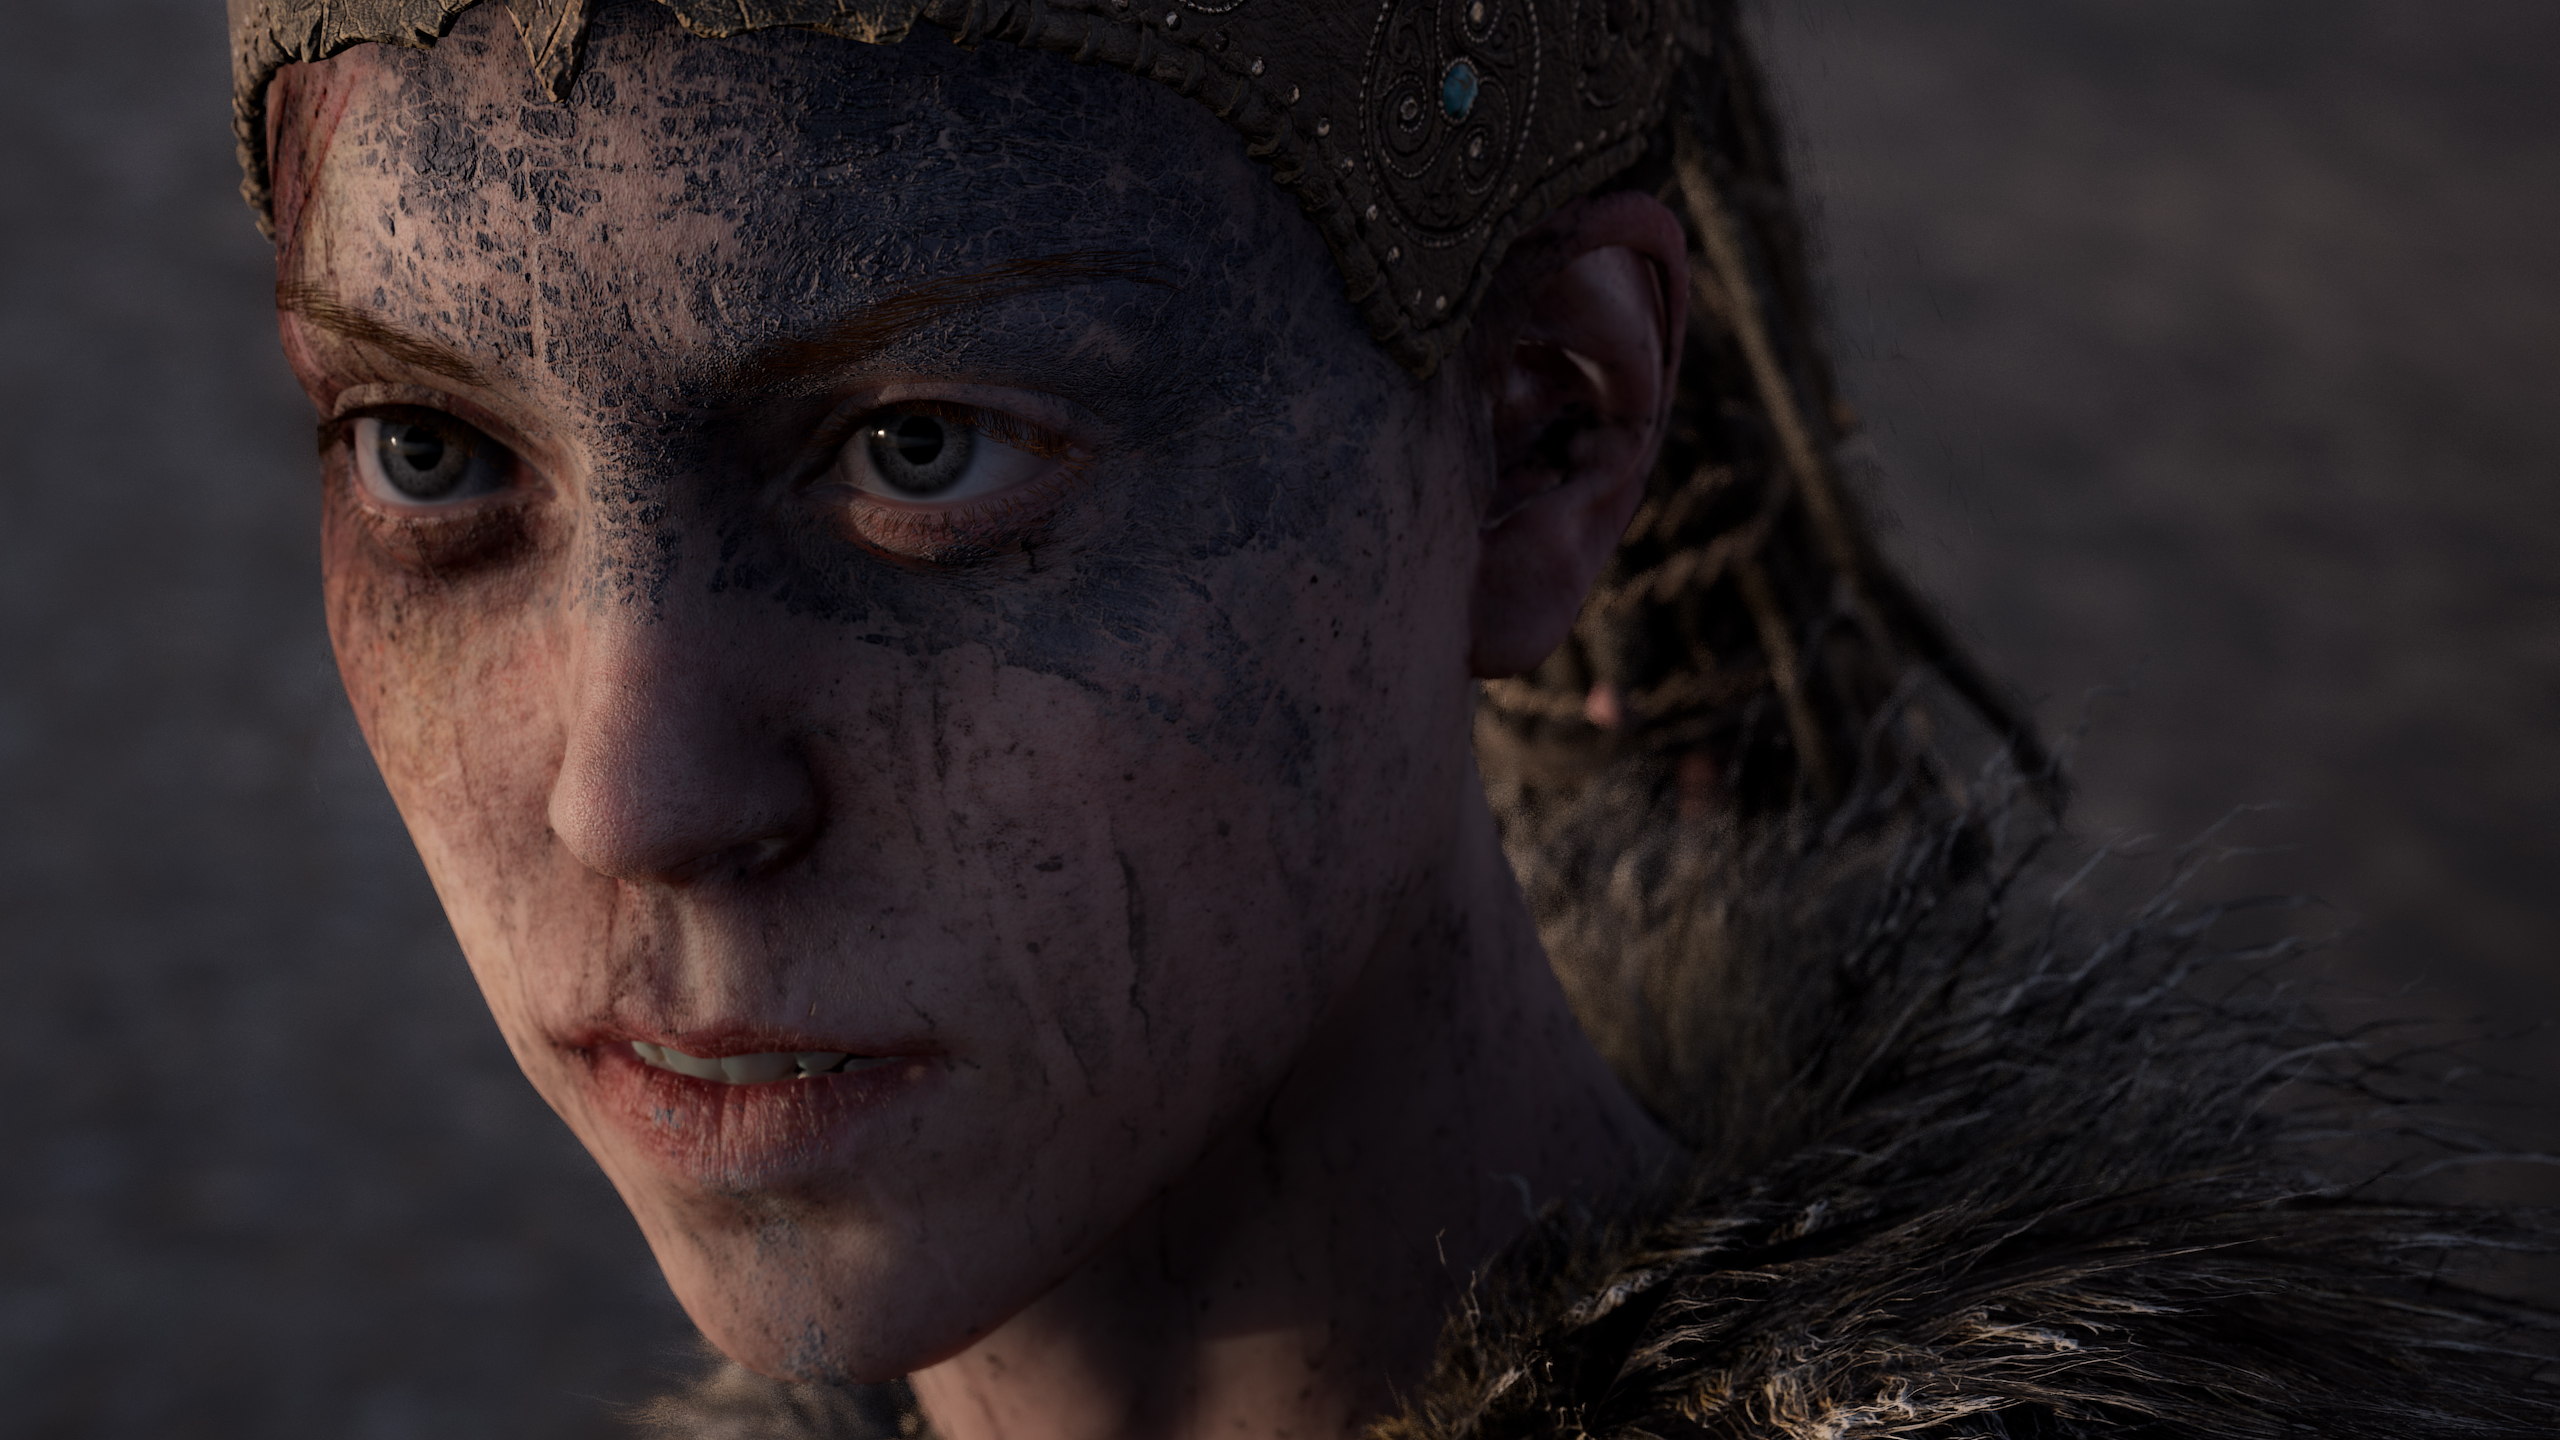 Review: Hellblade: Senua's Sacrifice is a love letter to gaming